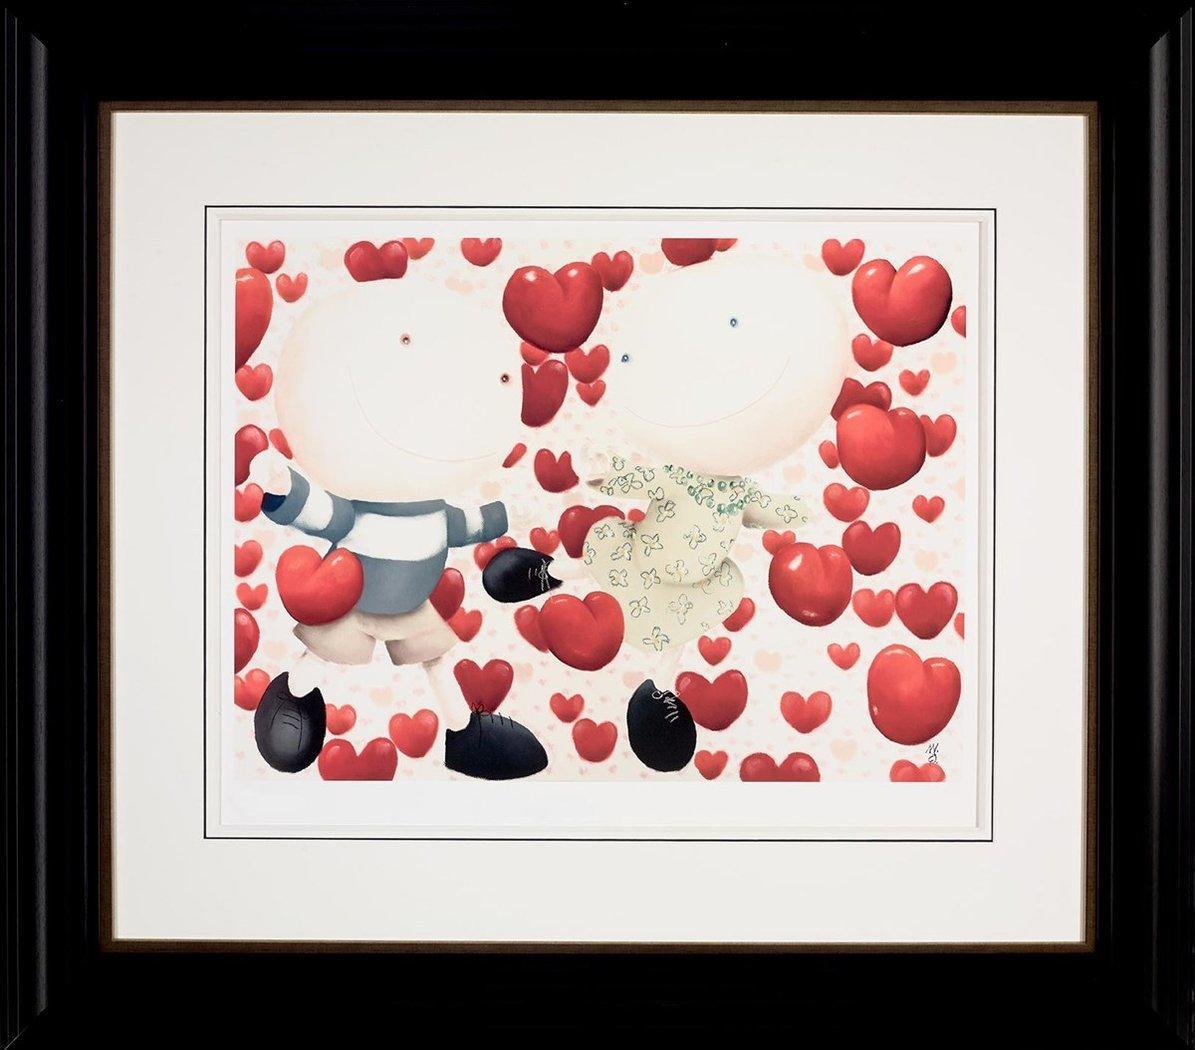 Dancing in Love by Mackenzie Thorpe - Limited Edition print LTHP007